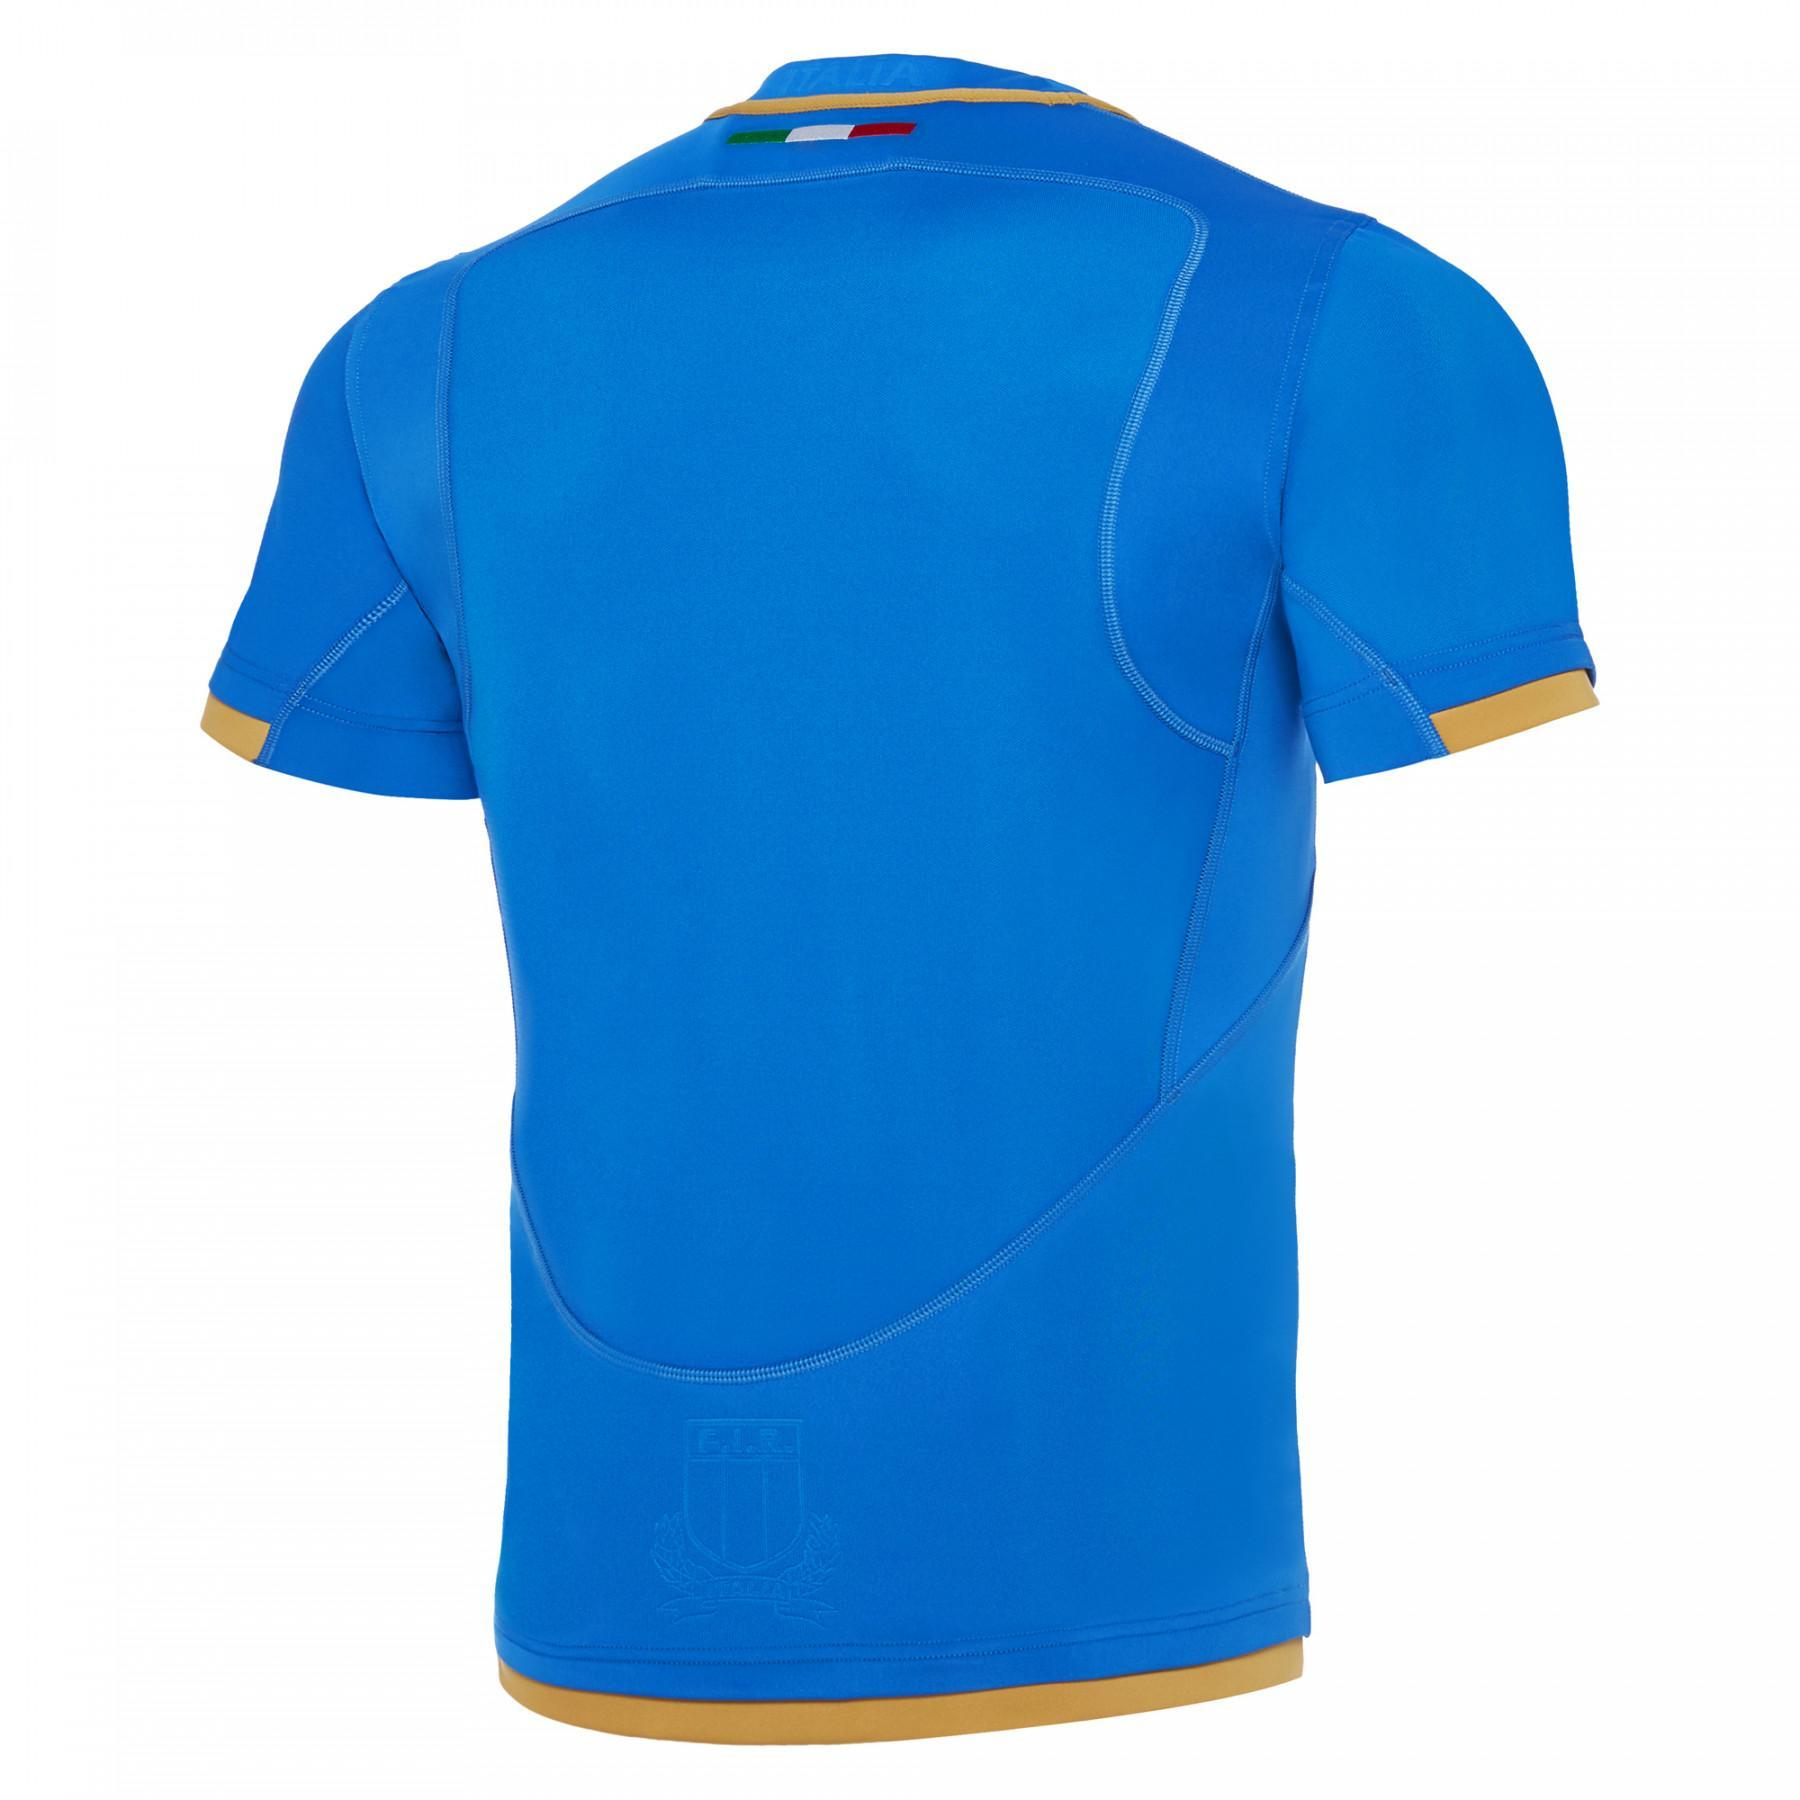 Home jersey Italy Rugby 2017-2018